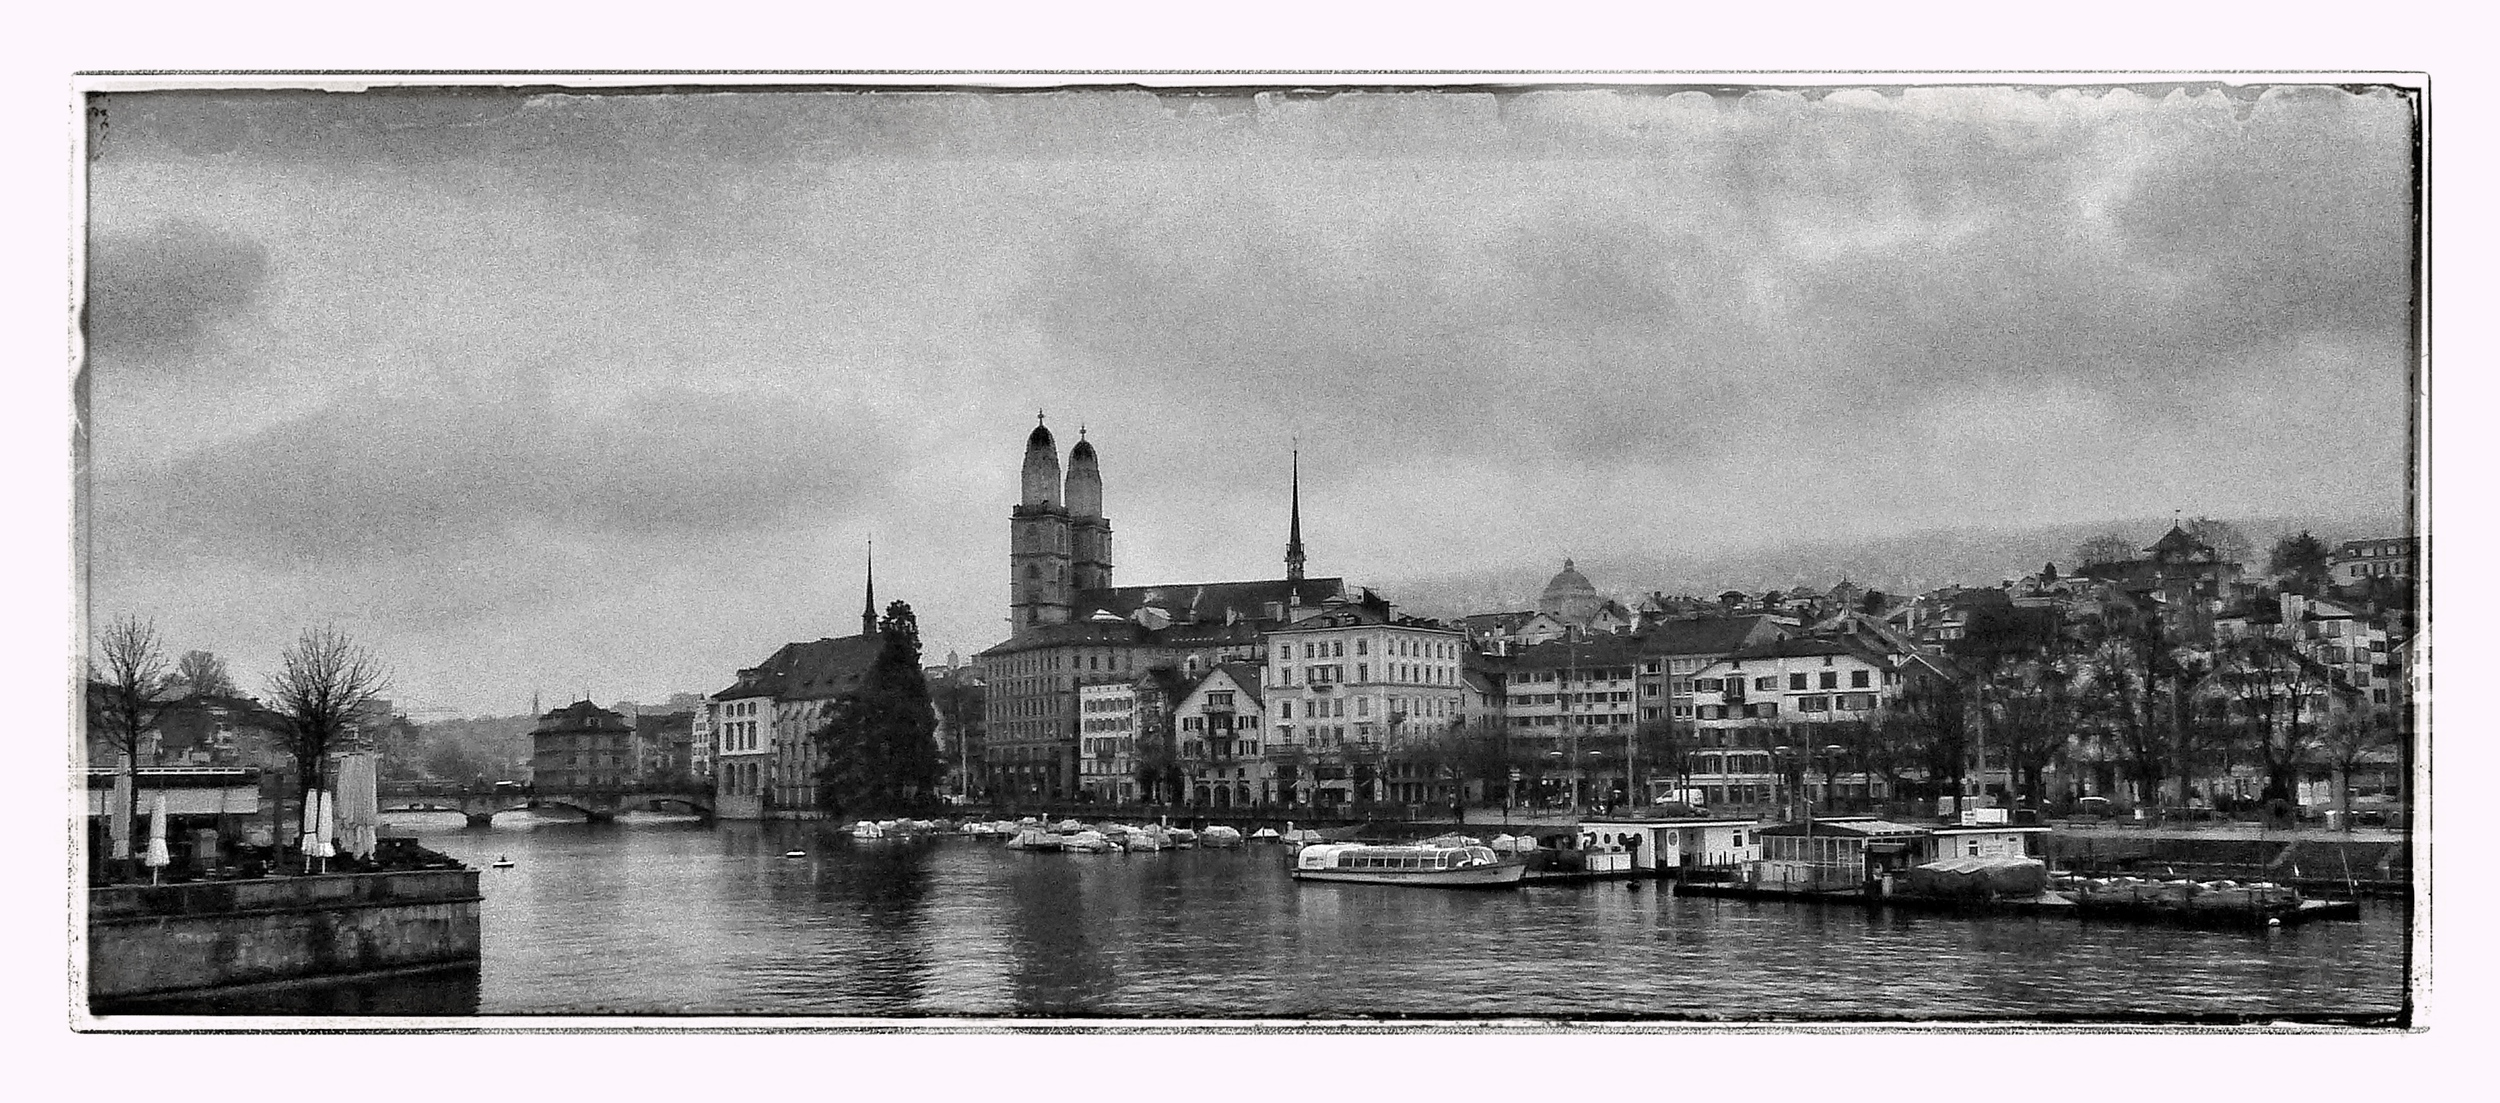 Zurich March '13 Leica D-Lux 4